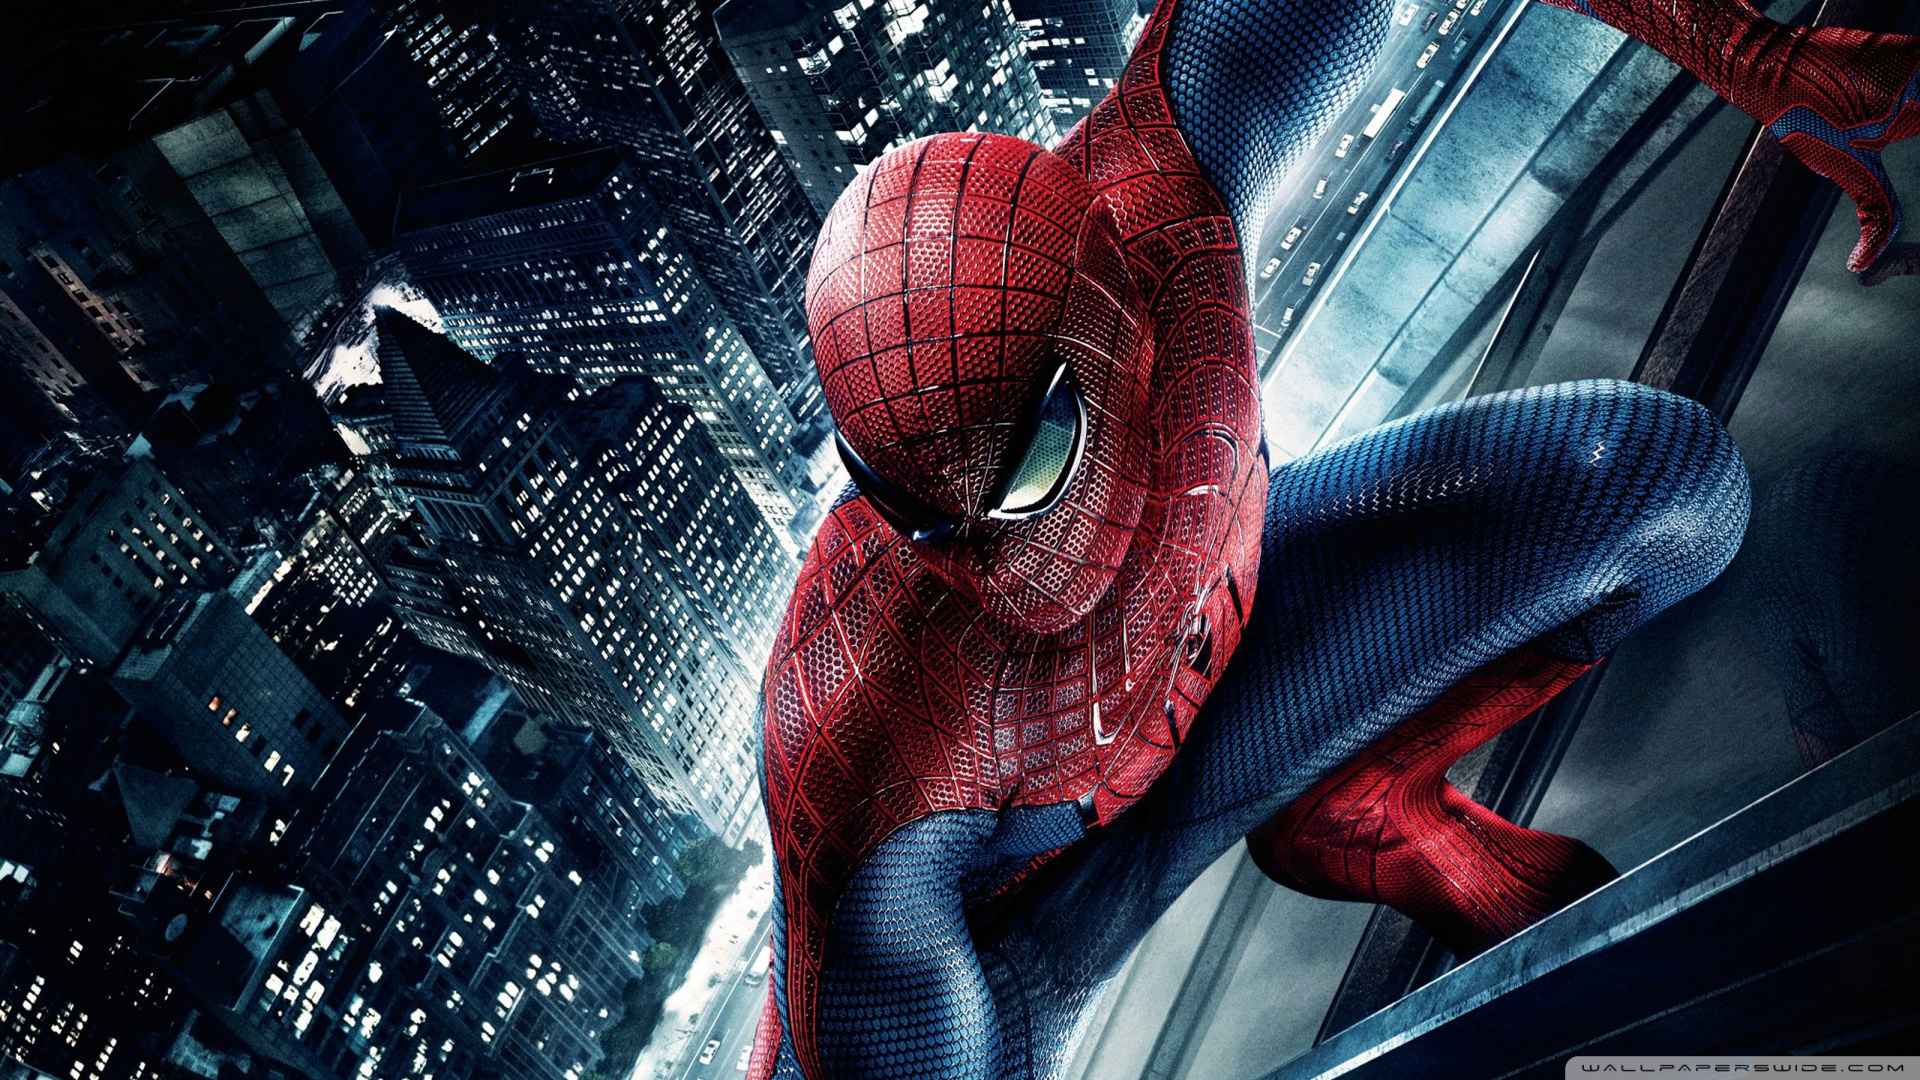 amazing siderman